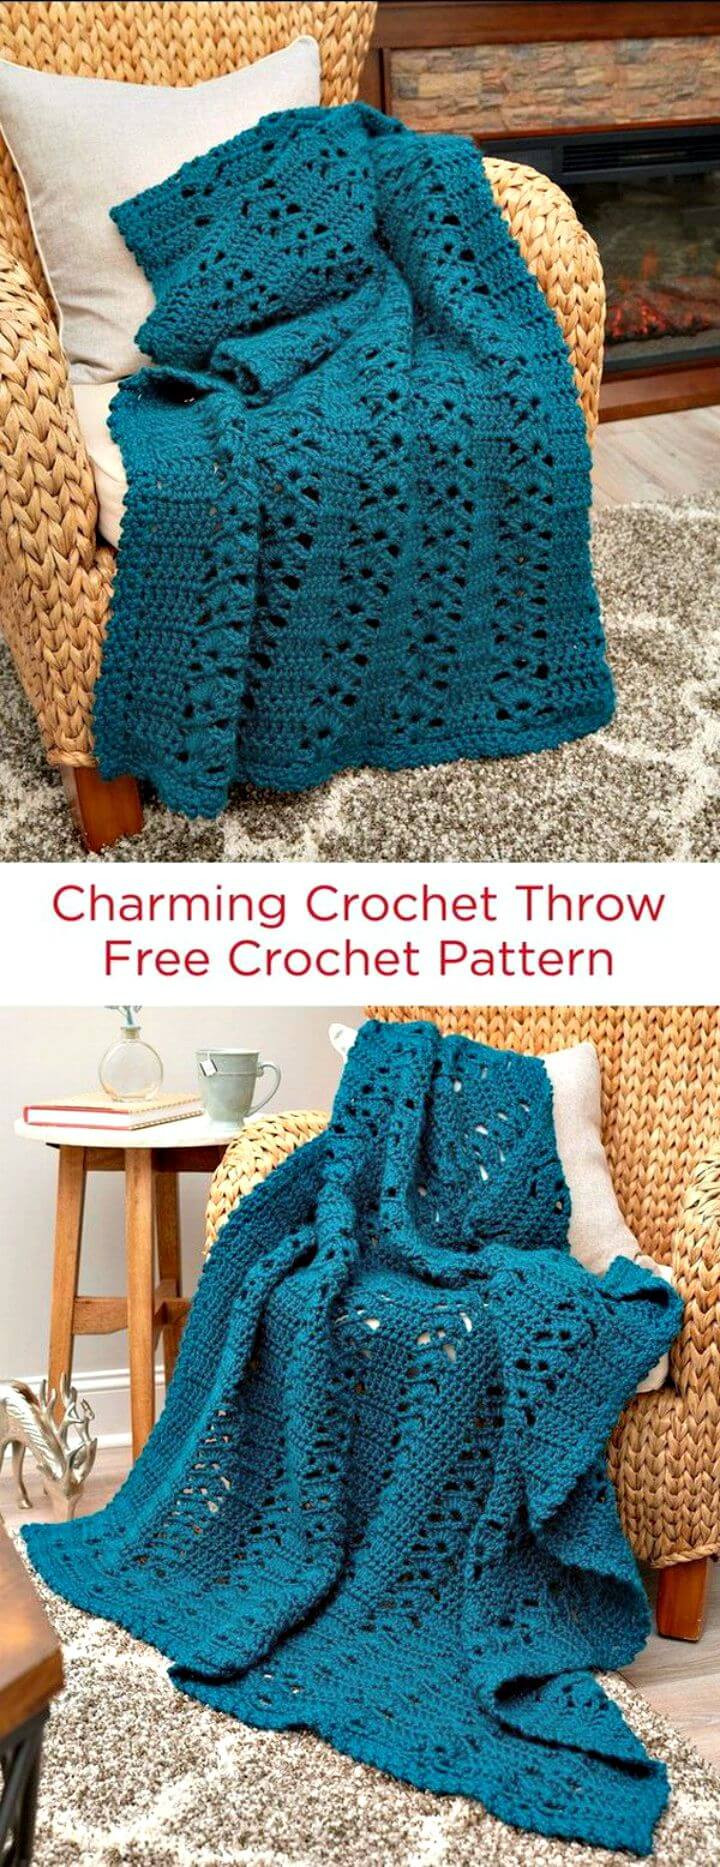 Afghan Crochet Patterns for Beginners Unique Crochet Afghan Patterns 41 Free Patterns for Beginners Of Amazing 48 Models Afghan Crochet Patterns for Beginners